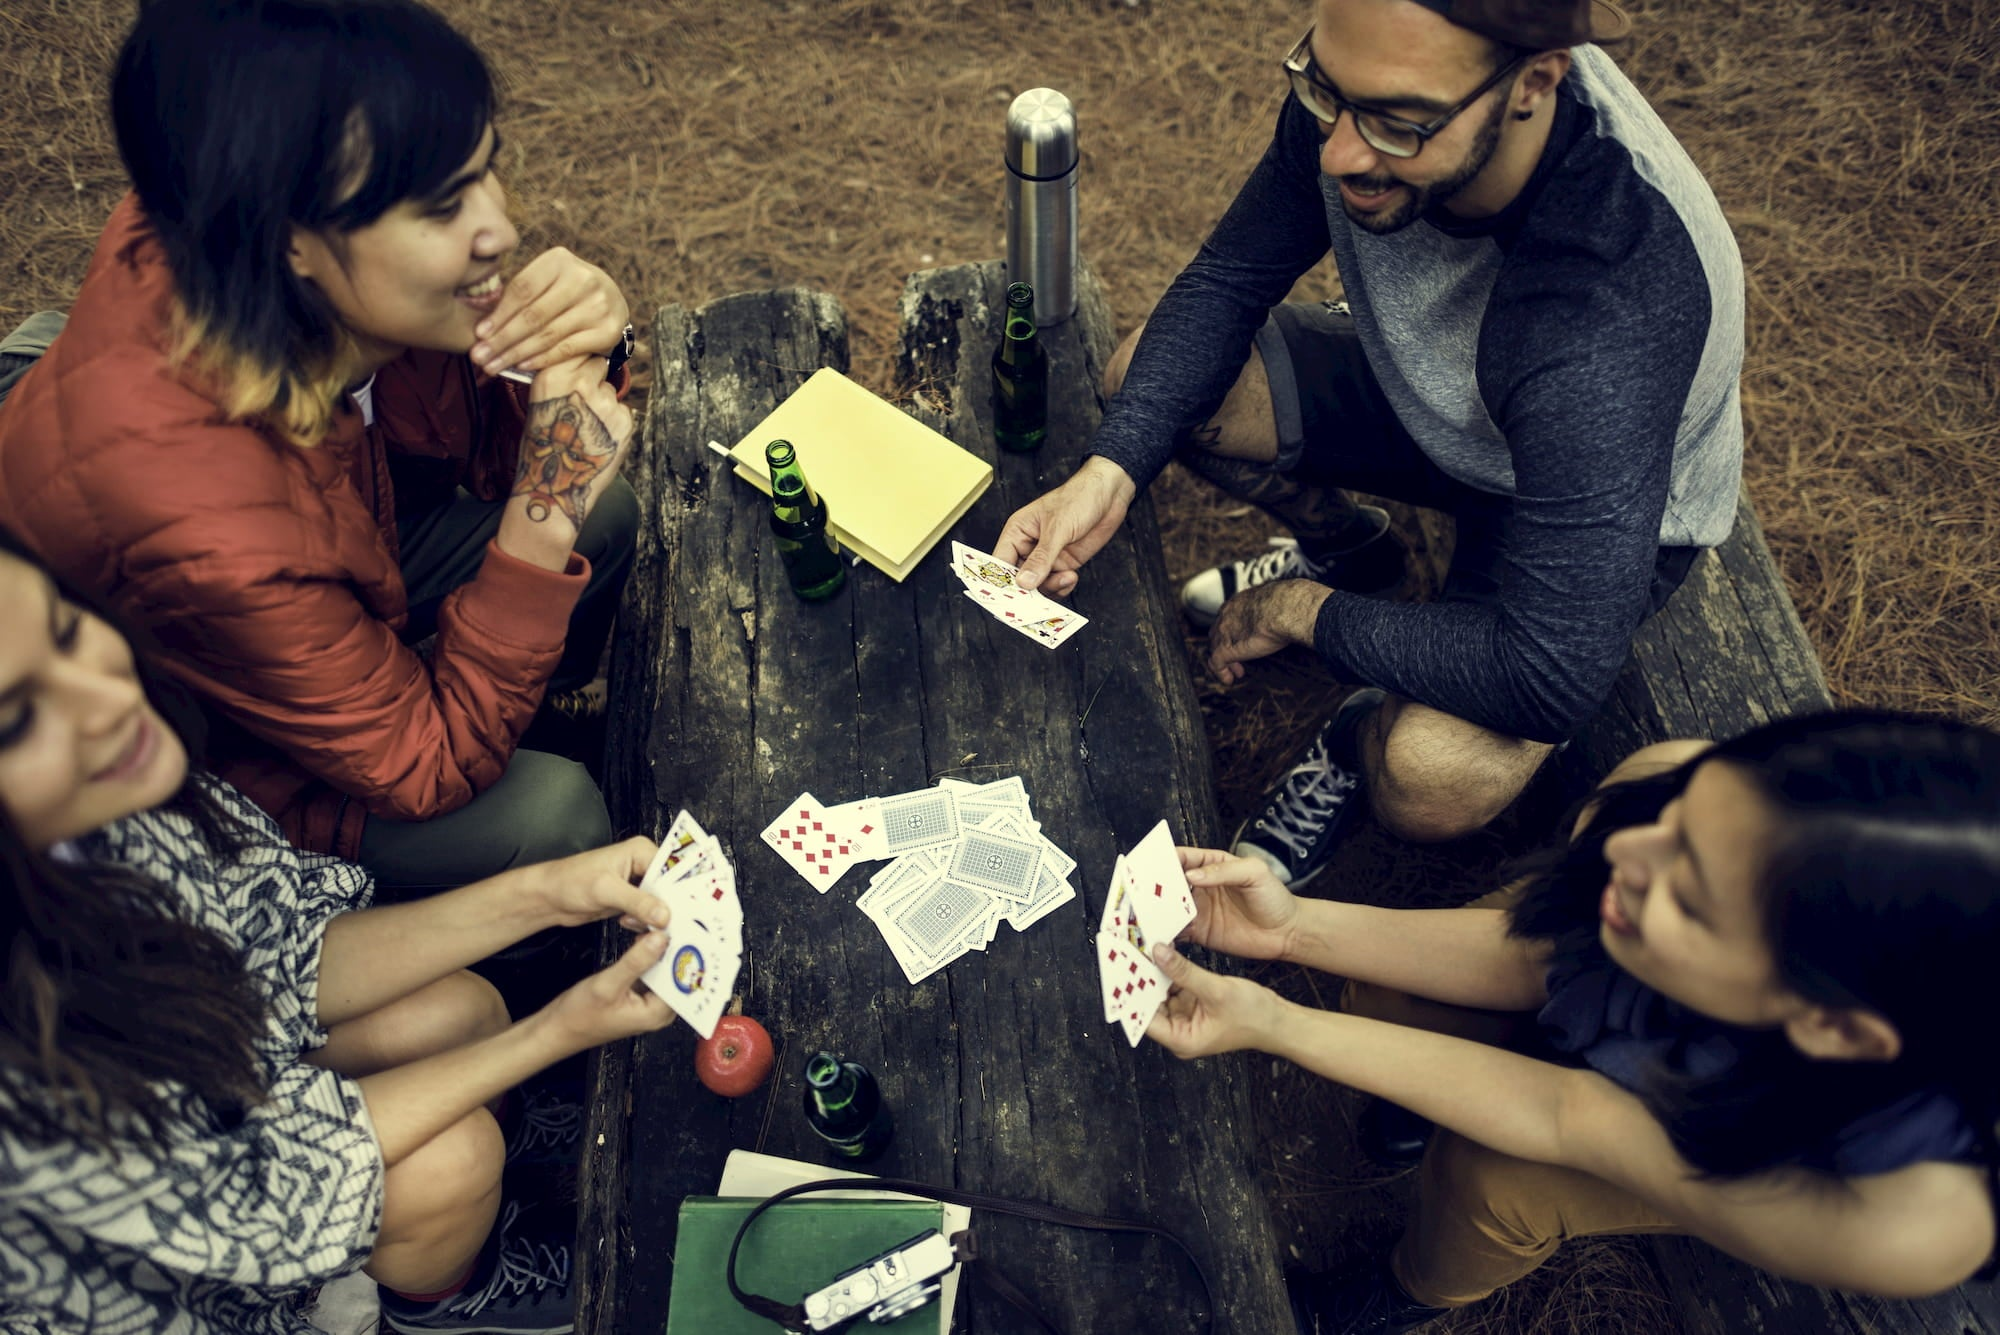 Friends playing cards a round a picnic table.